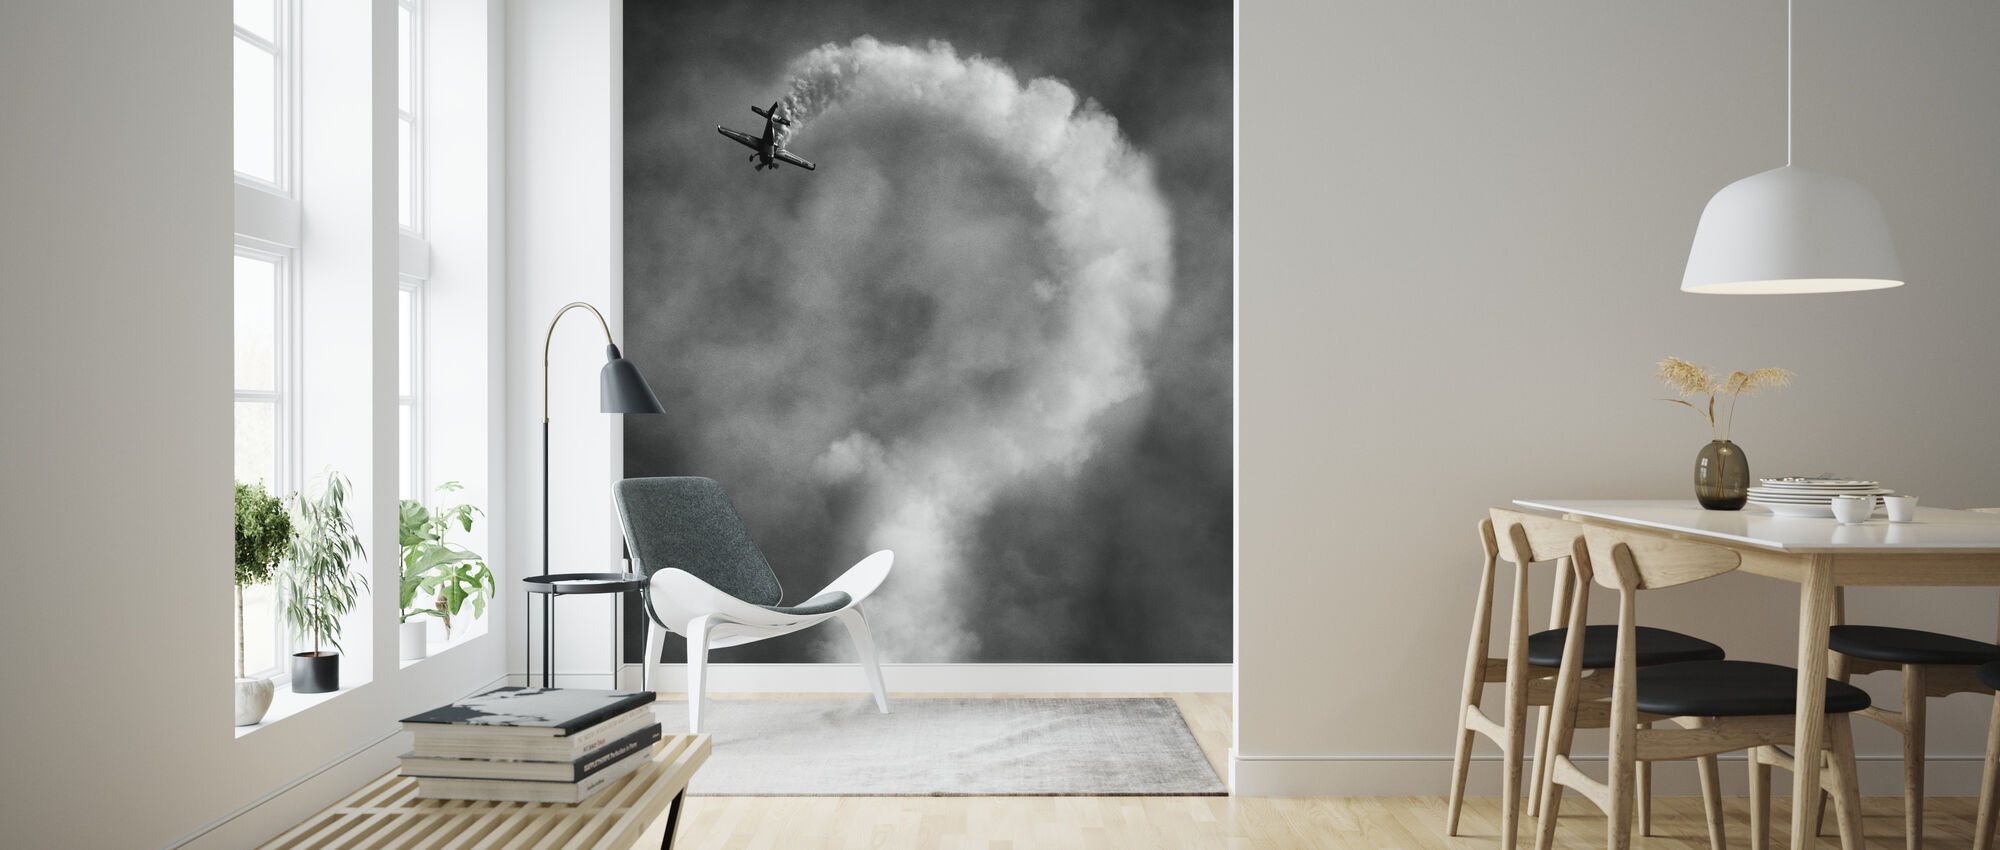 Questions About this Manoeuvre?, Anyone?, No? - Wallpaper - Living Room